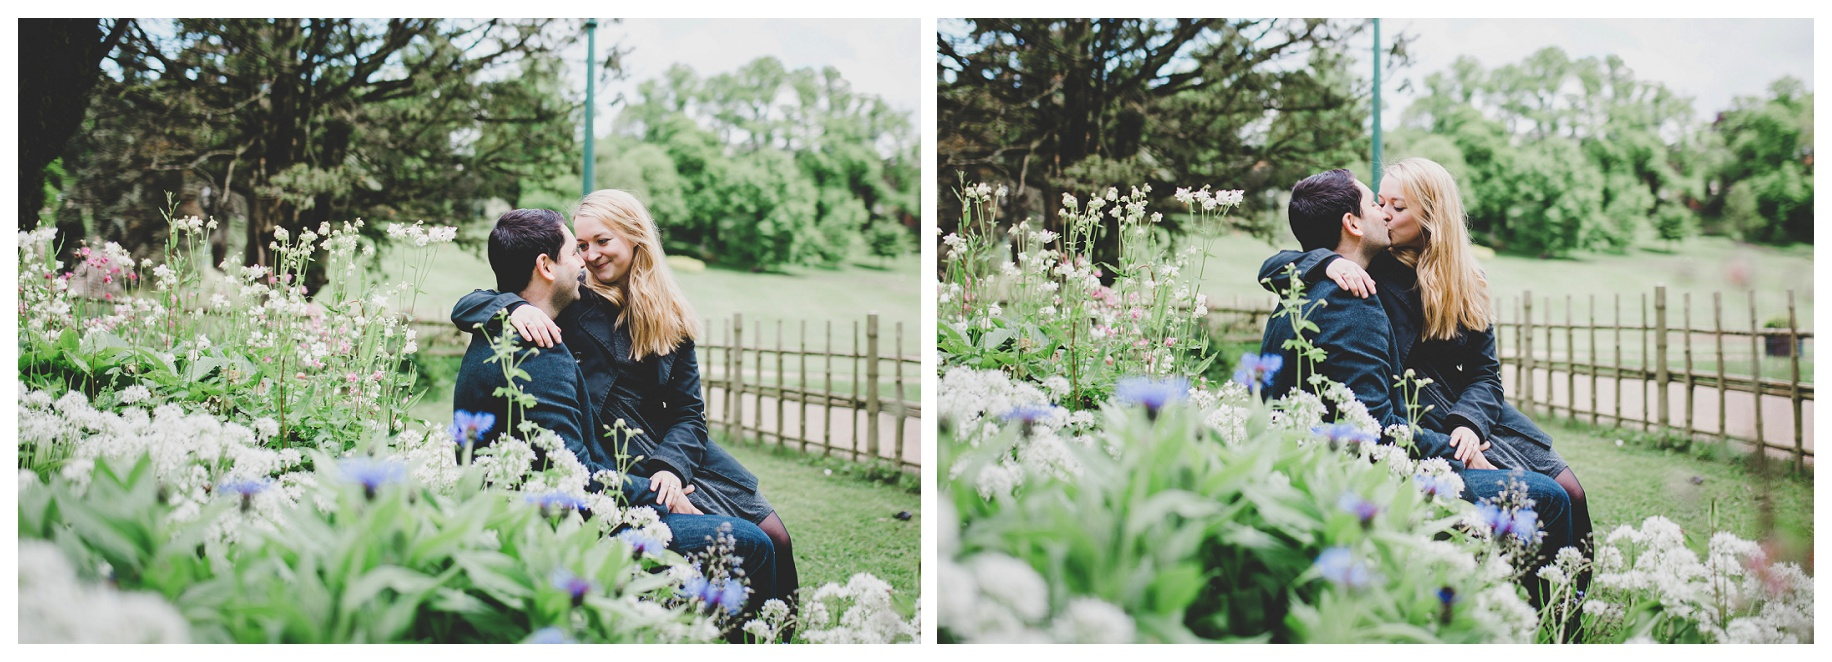 Avenham Park Wedding and Engagement Photography Preston Wedding Photographer (3)